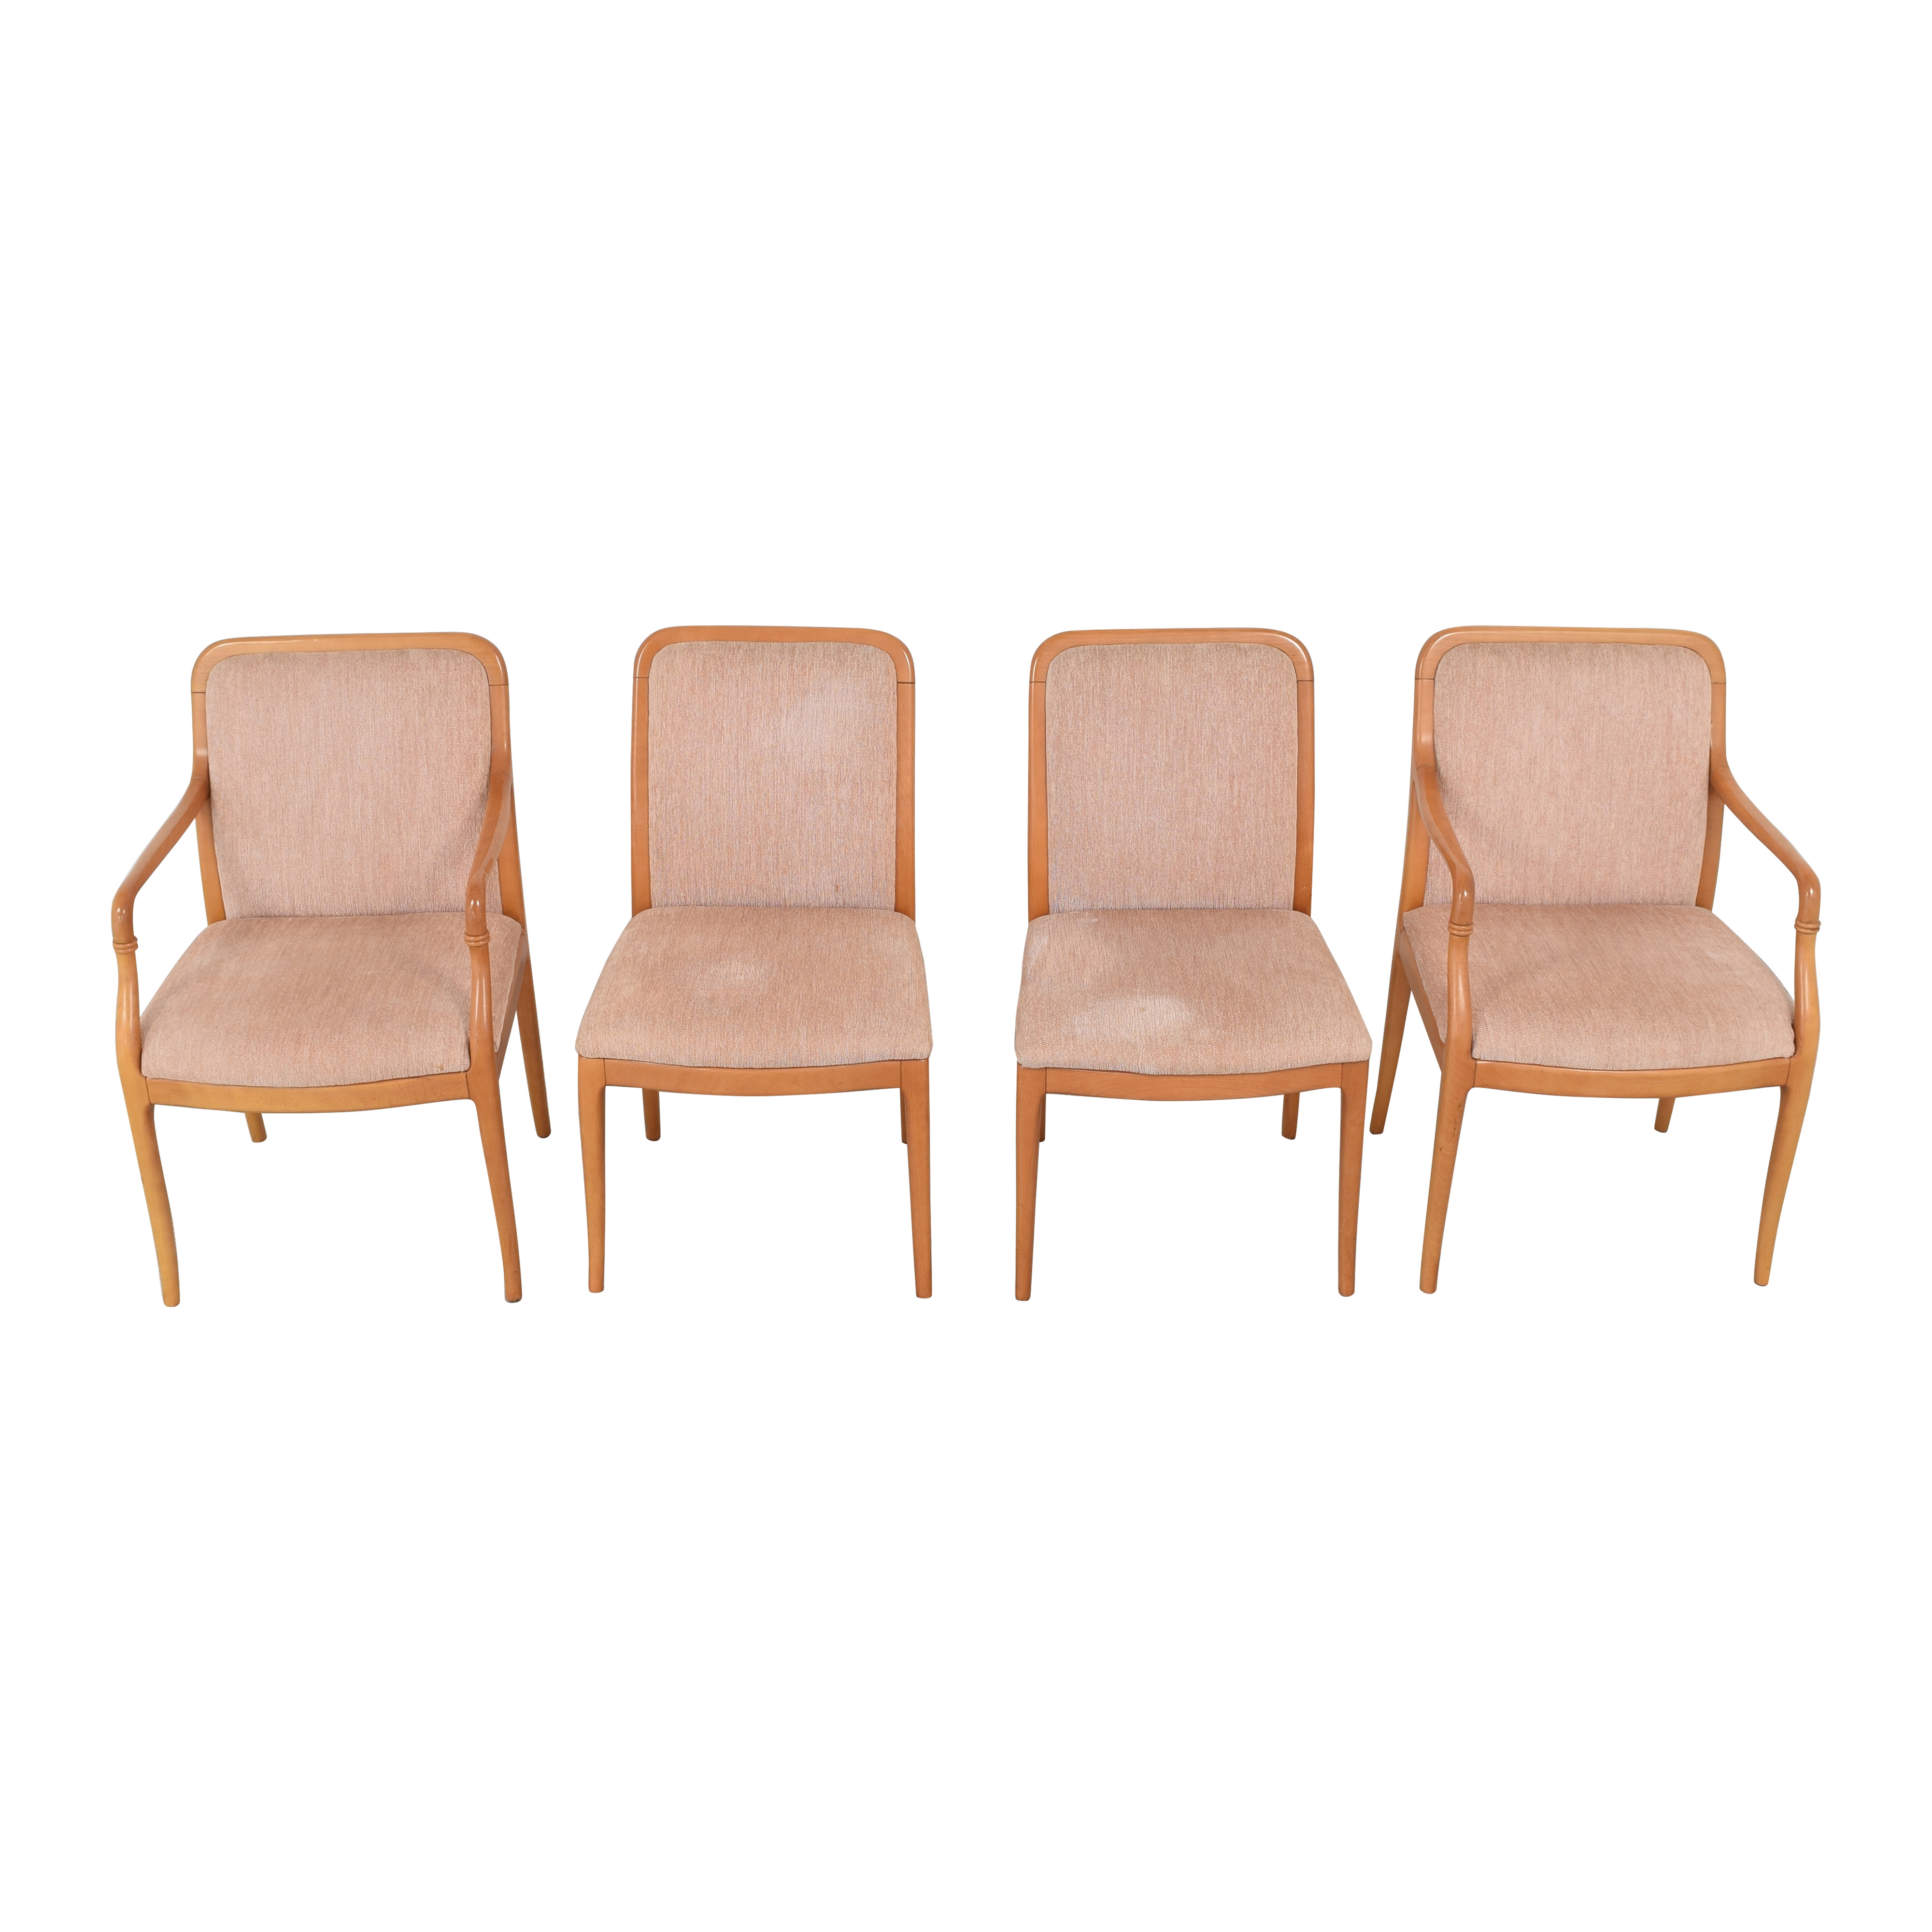 Directional Furniture Directional Furniture Dining Chairs discount